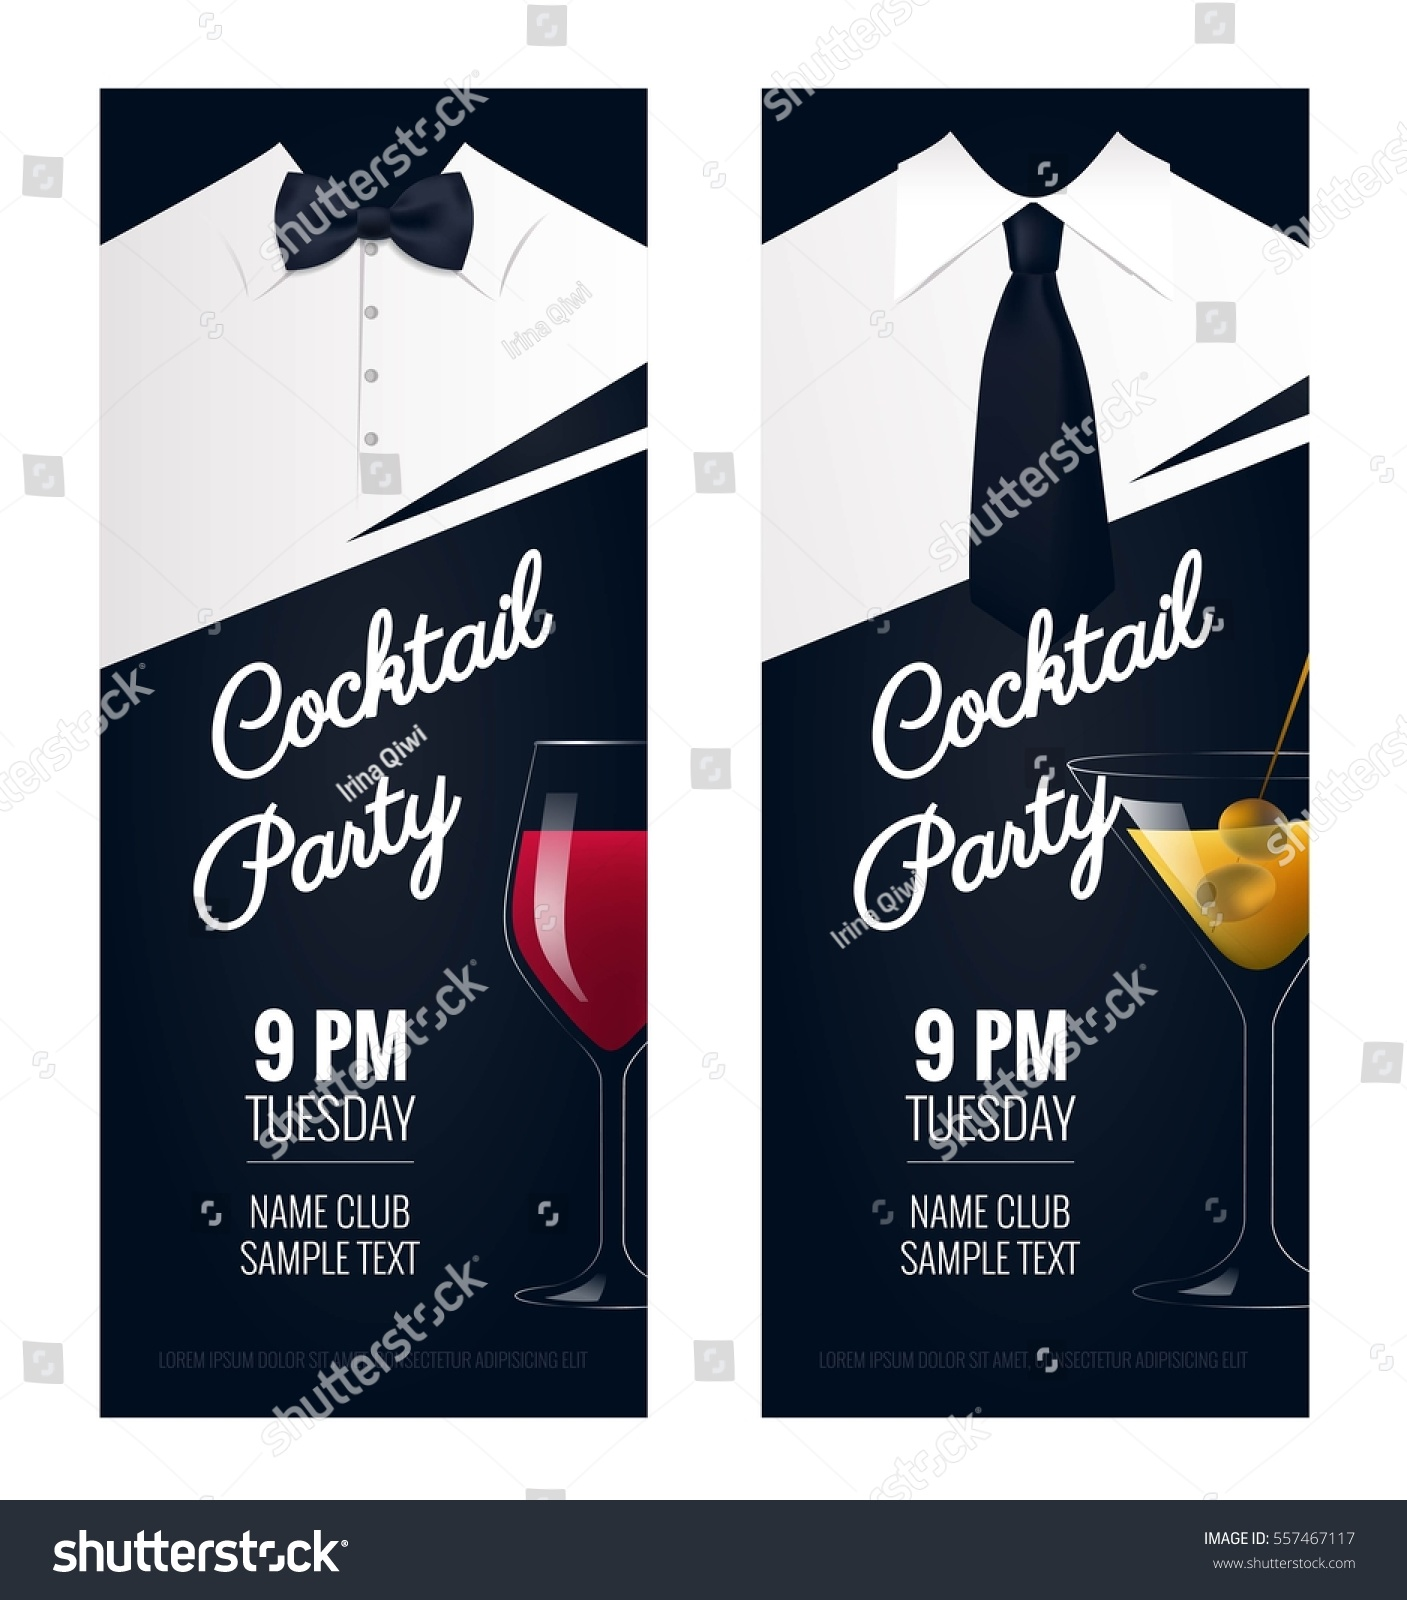 Cocktail Party Invitation Flyer Poster Design Vector – Party Invitation Flyer